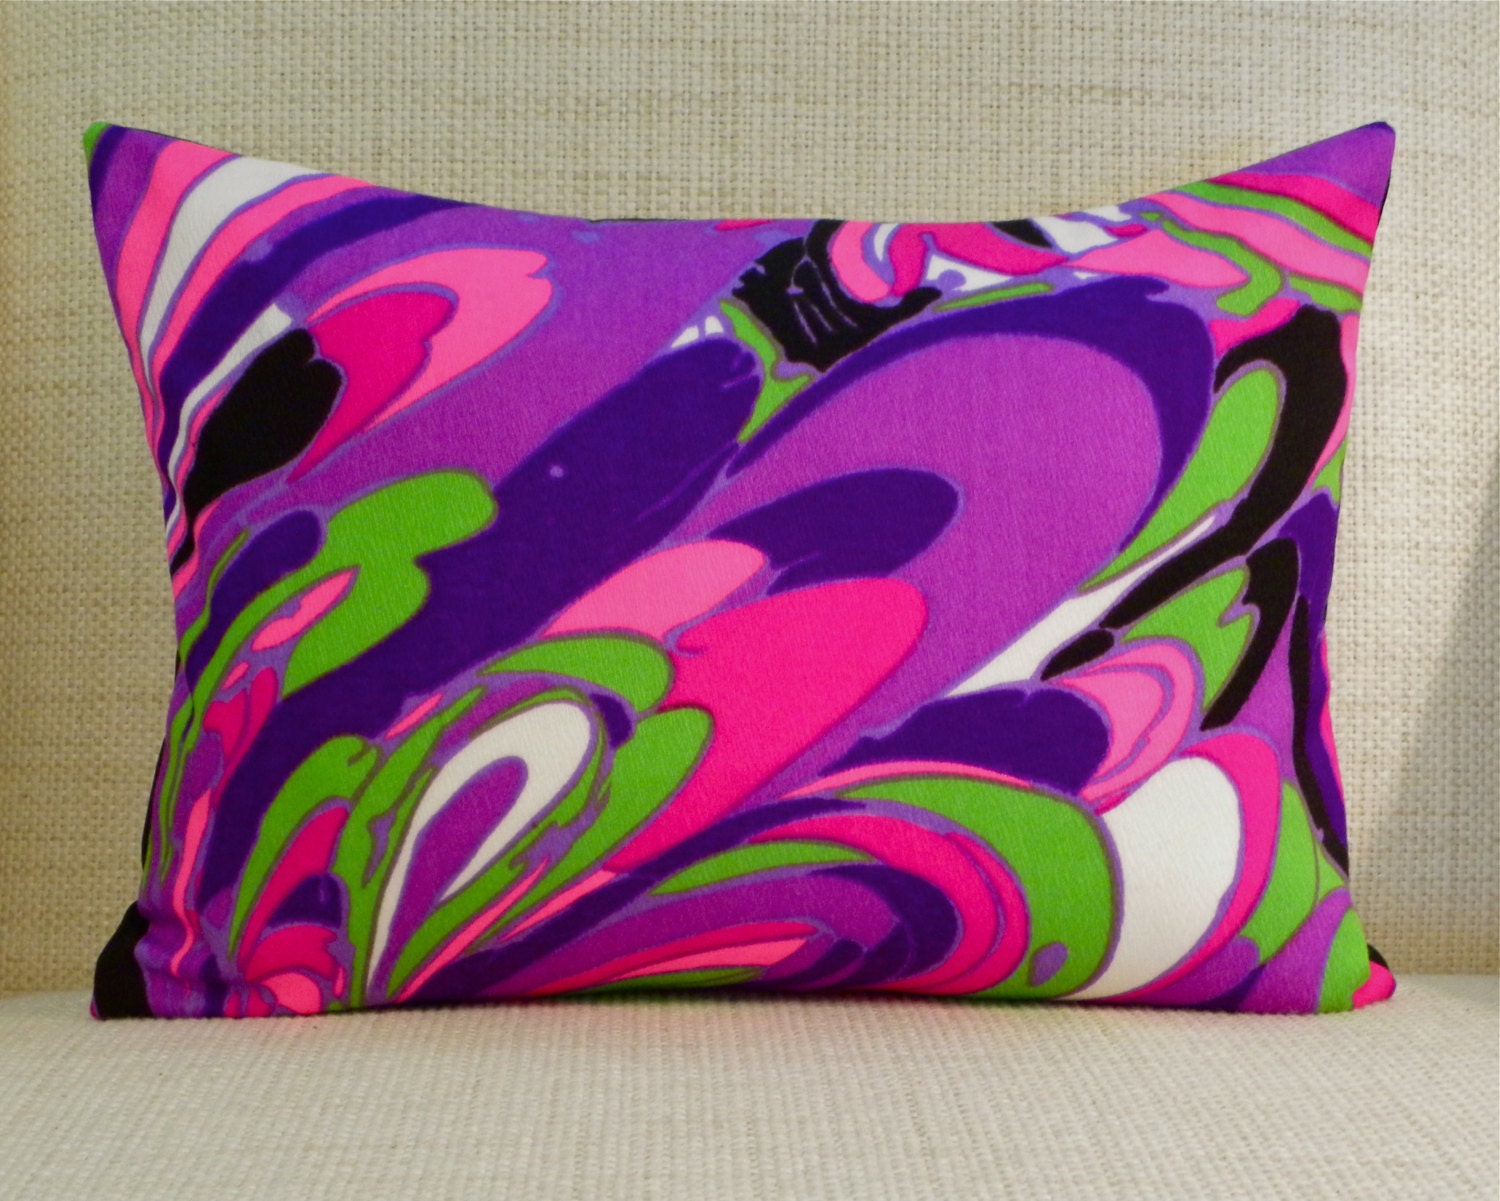 Throw Pillow Cover Fabric : Throw Pillow Cover Vintage Mod Fabric Purple Pink